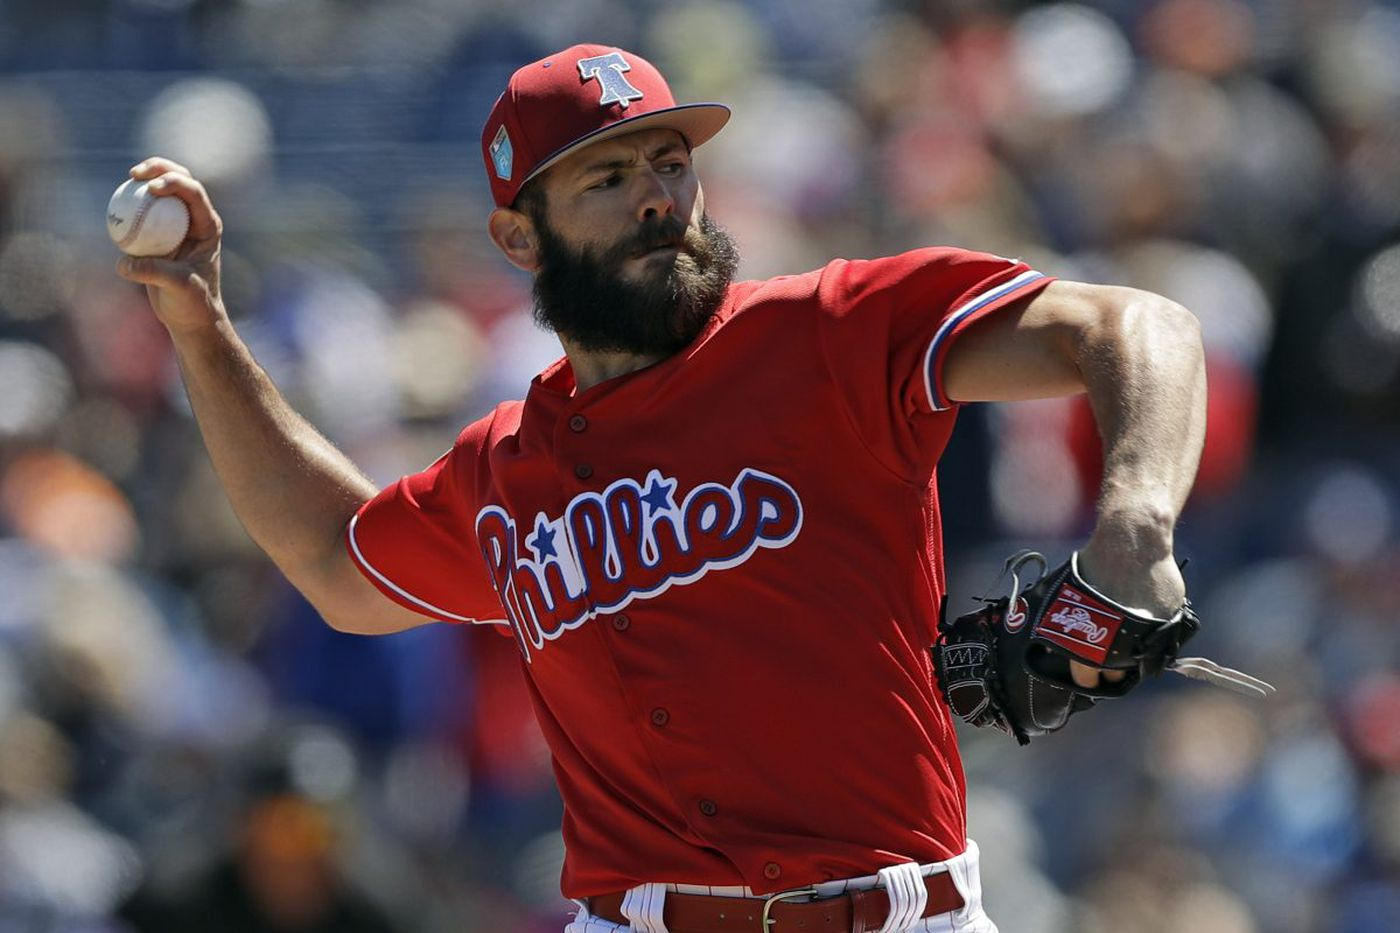 Jake Arrieta pitches two innings in spring debut; 'it felt great'